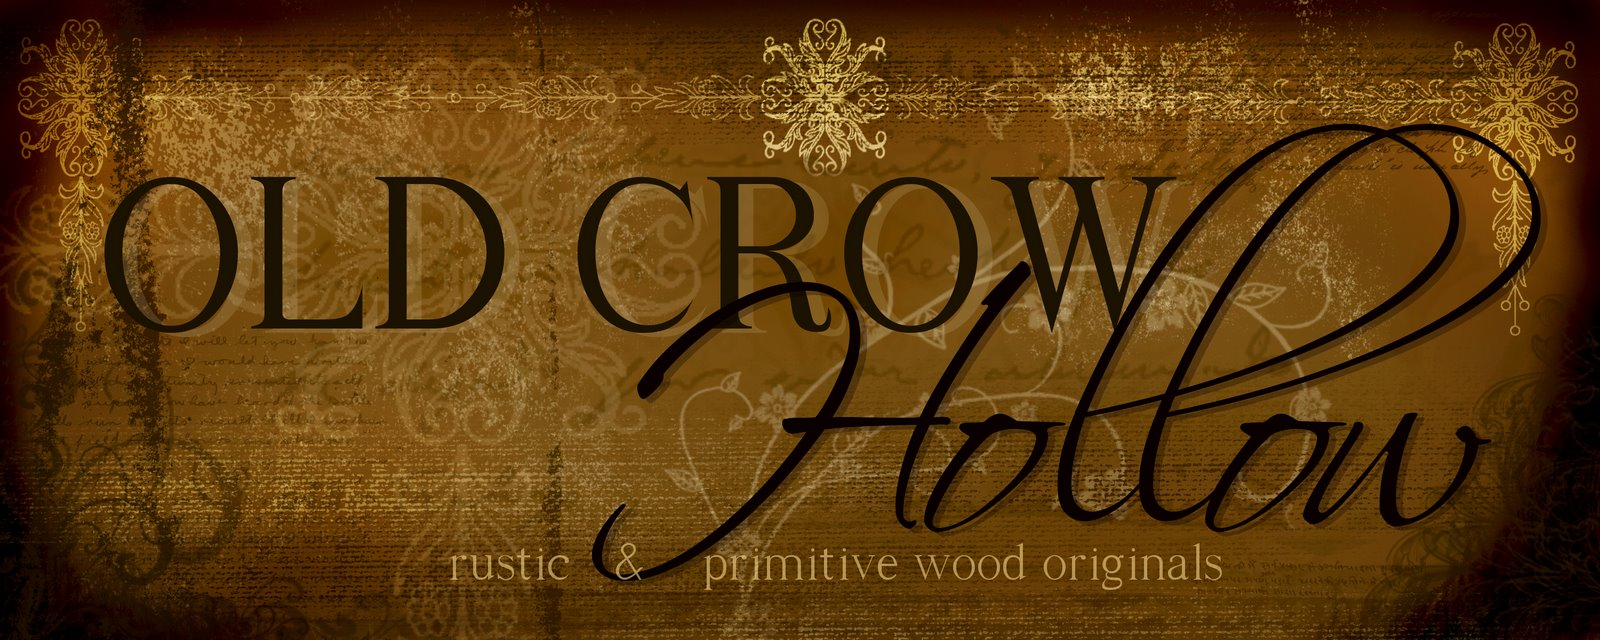 Old Crow Hollow